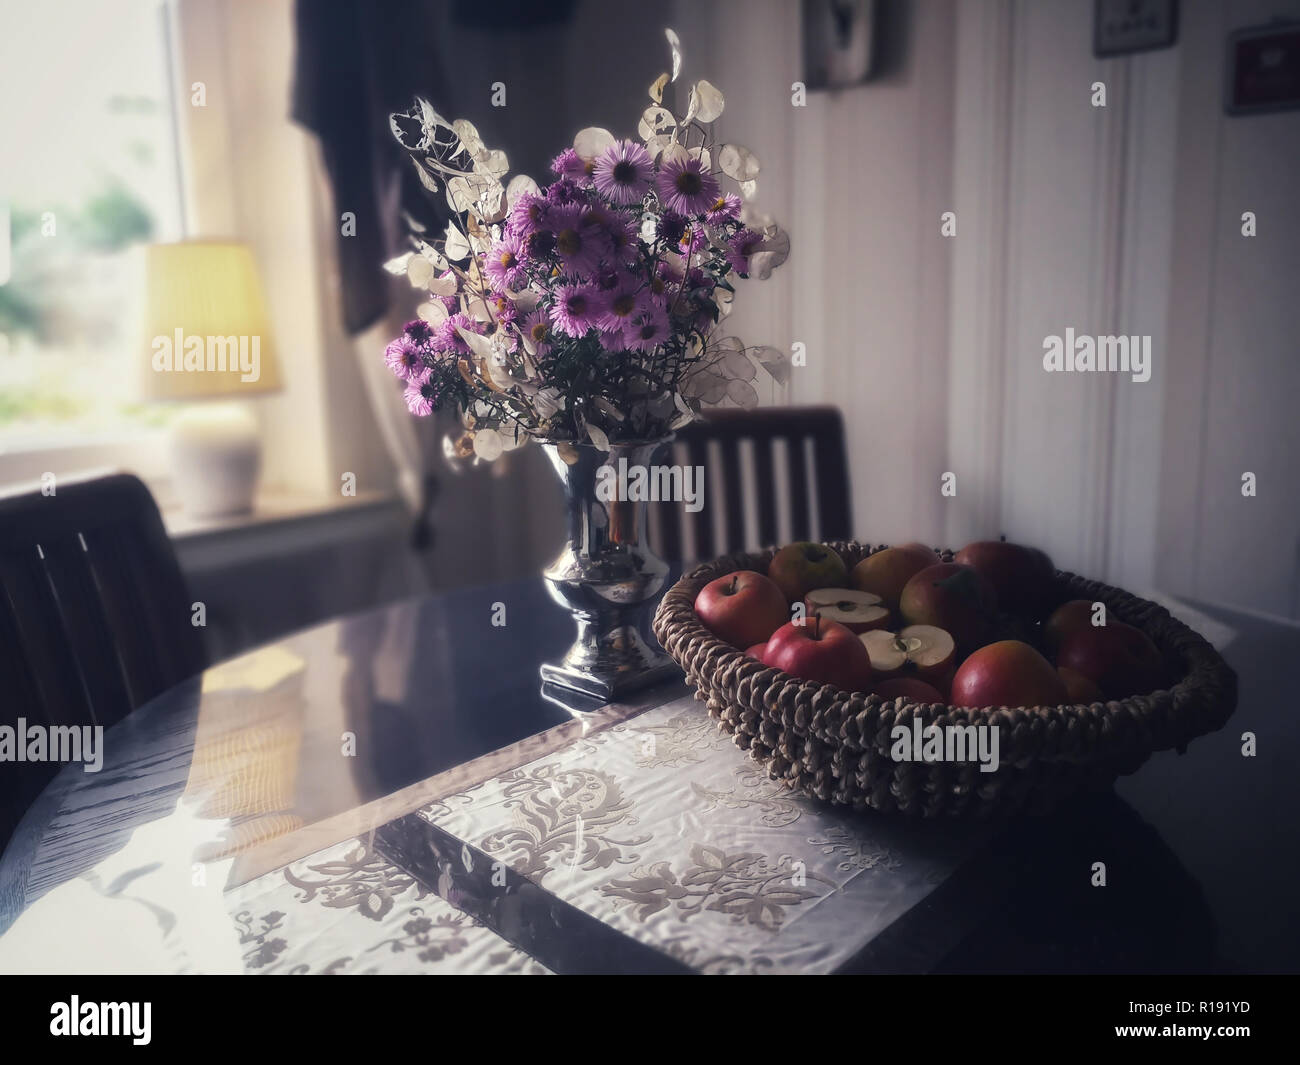 Autumnally decorate with asters, silver leaf (Lunaria) and an old variety of apples. Dark furniture and striped wallpaper in retro look. Flowers and f - Stock Image